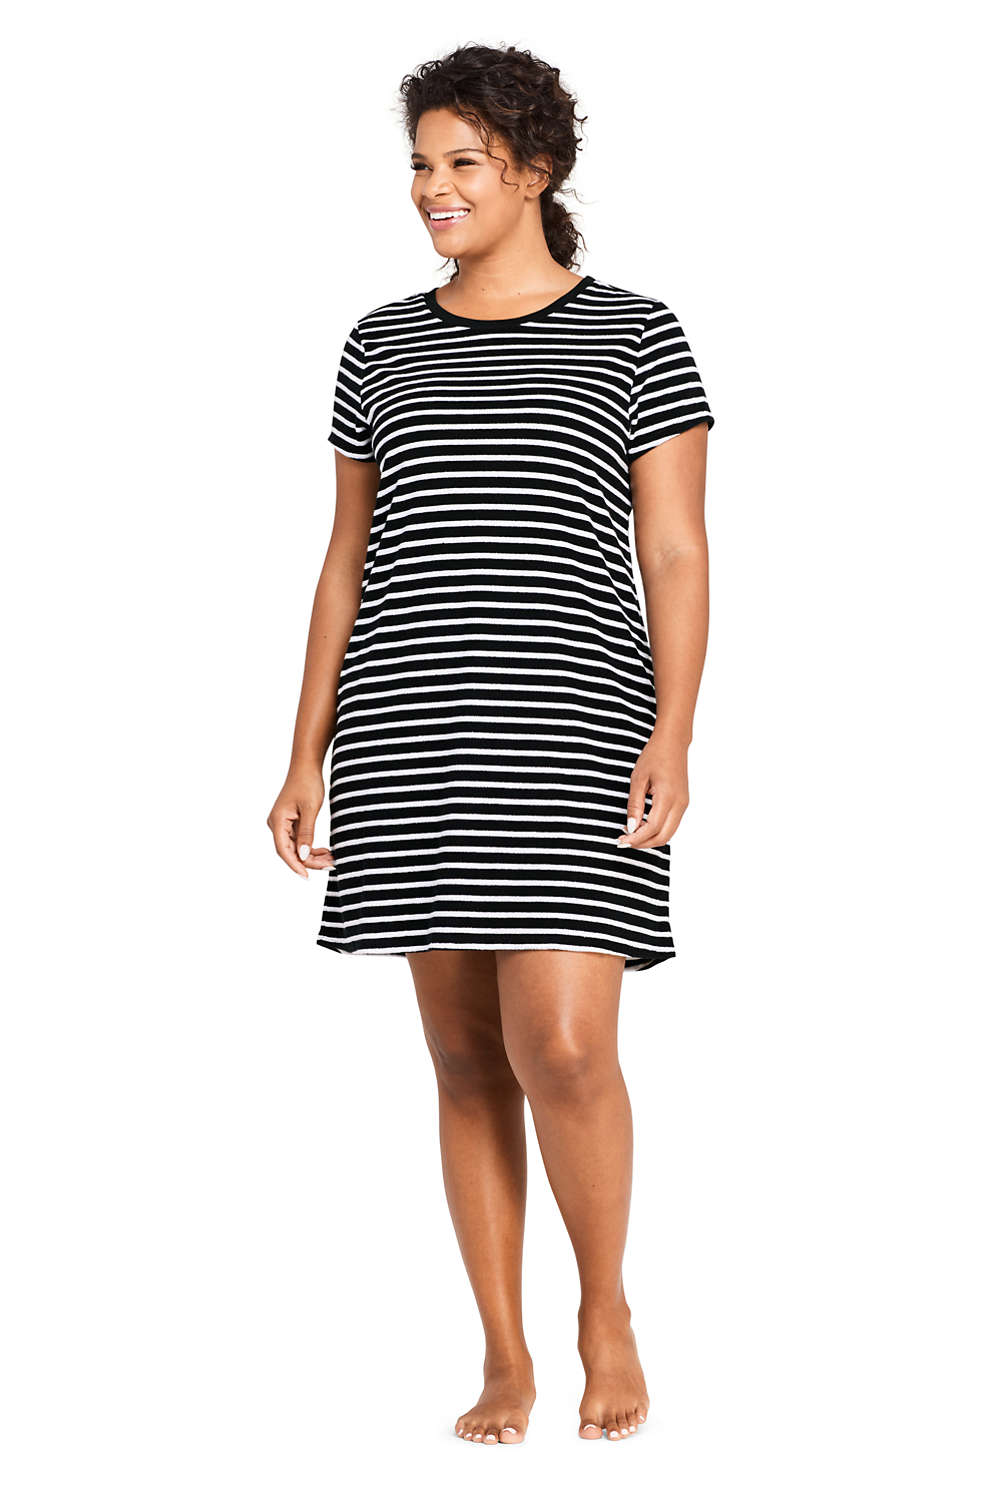 886b4fef14206 Women s Plus Size Terry T-Shirt Dress Swim Cover-up Stripe from Lands  End